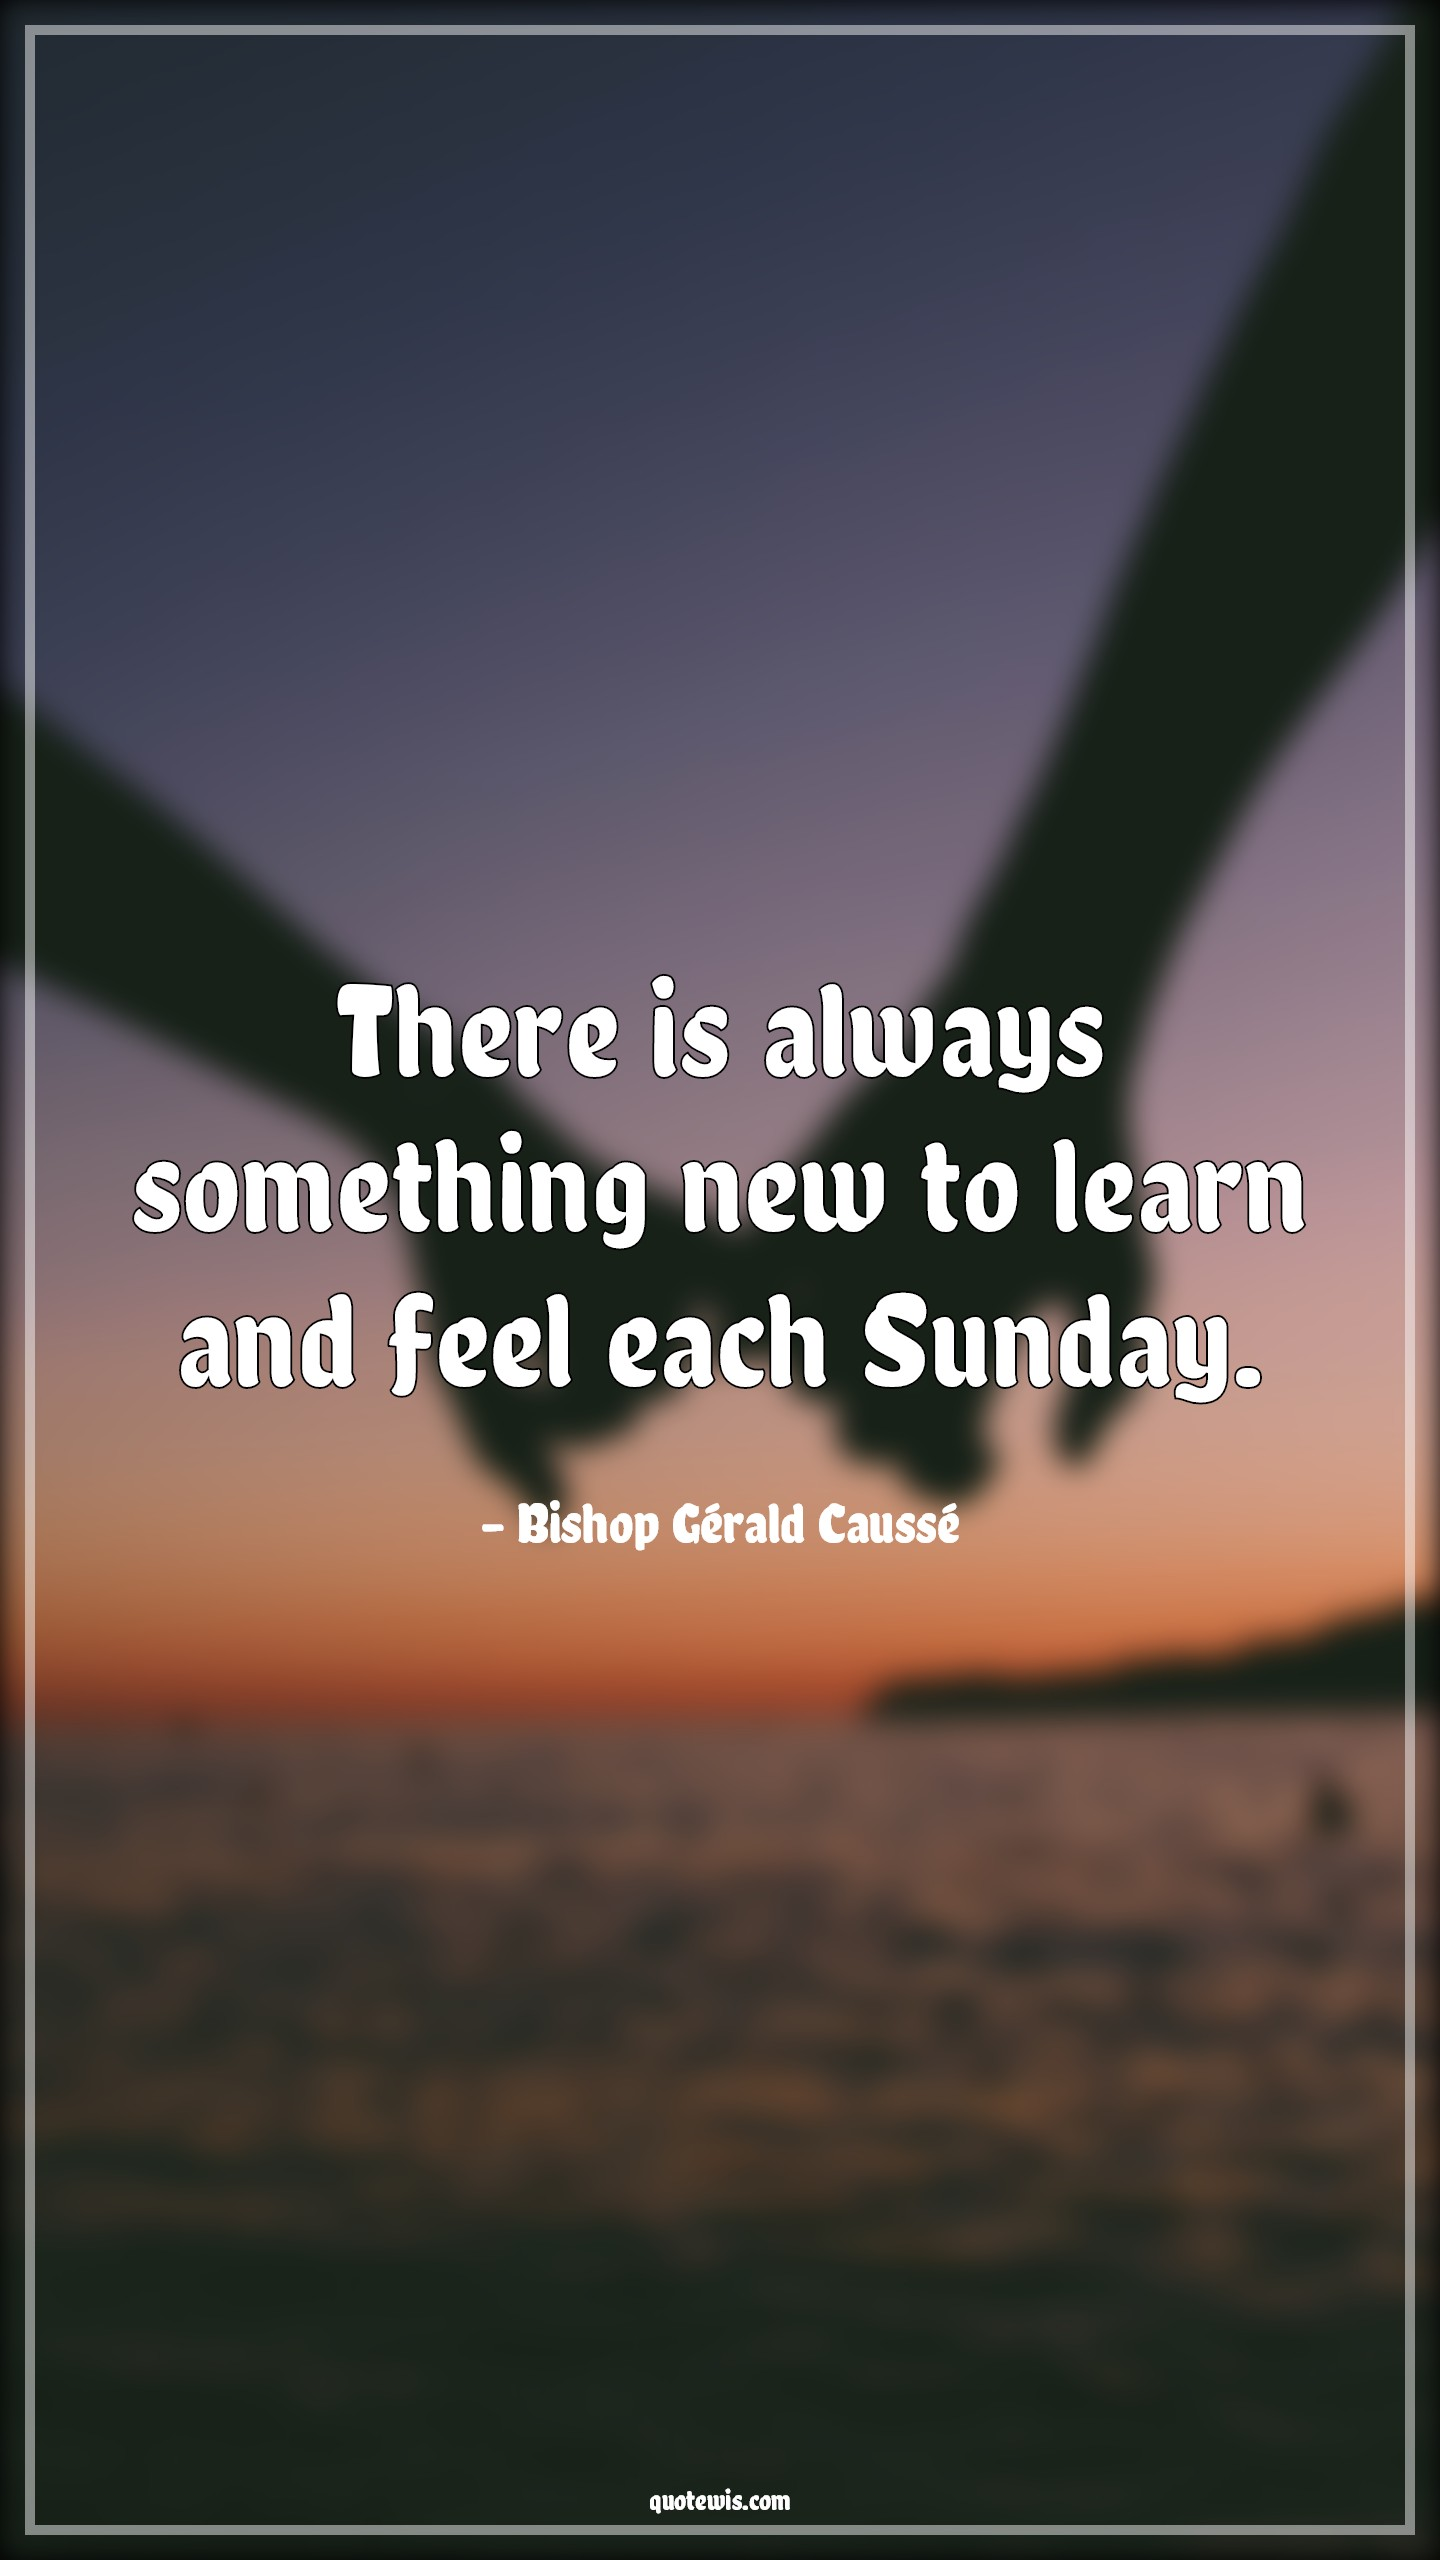 There is always something new to learn and feel each Sunday.